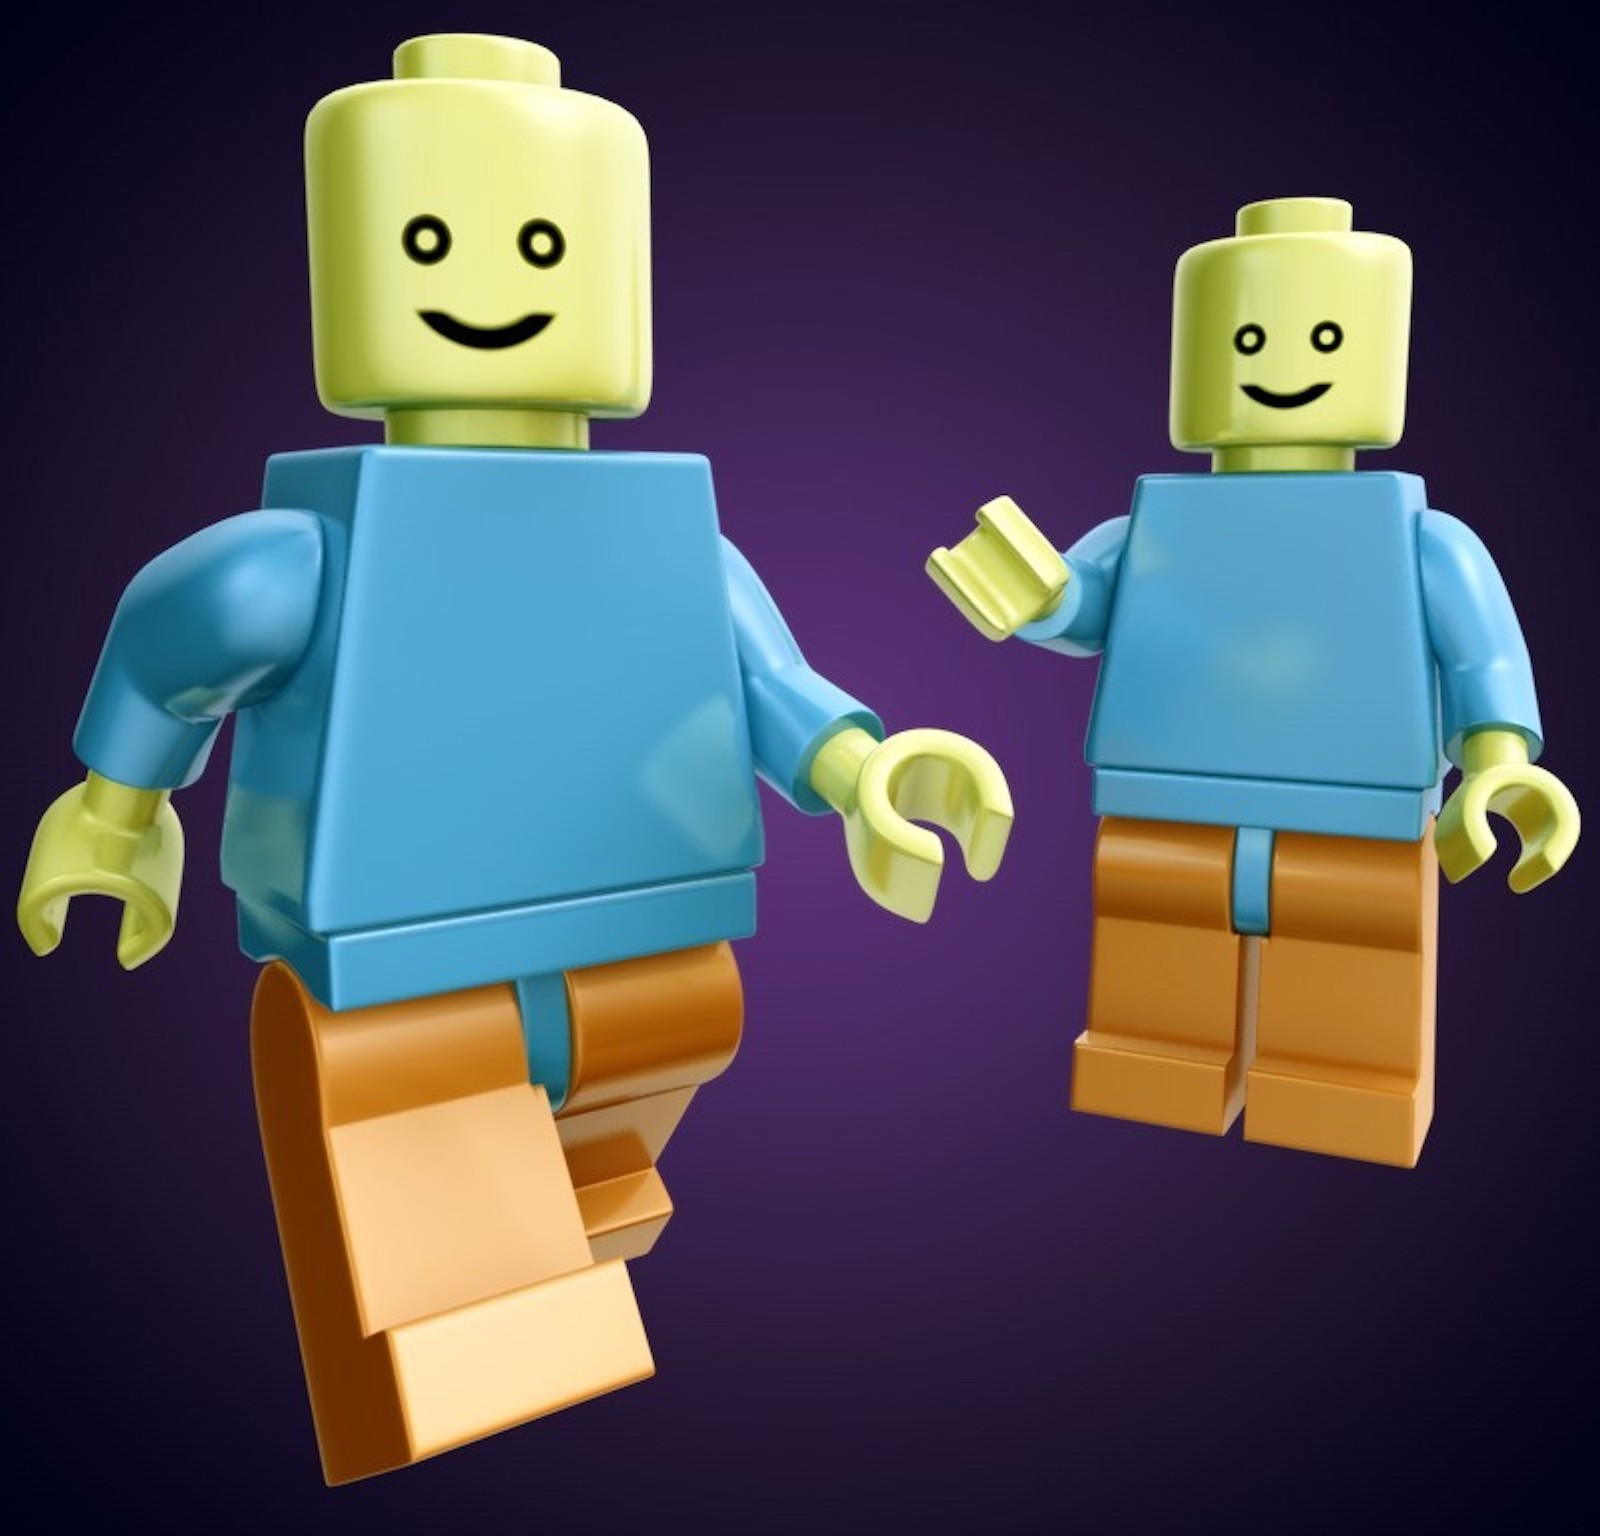 Lego's character